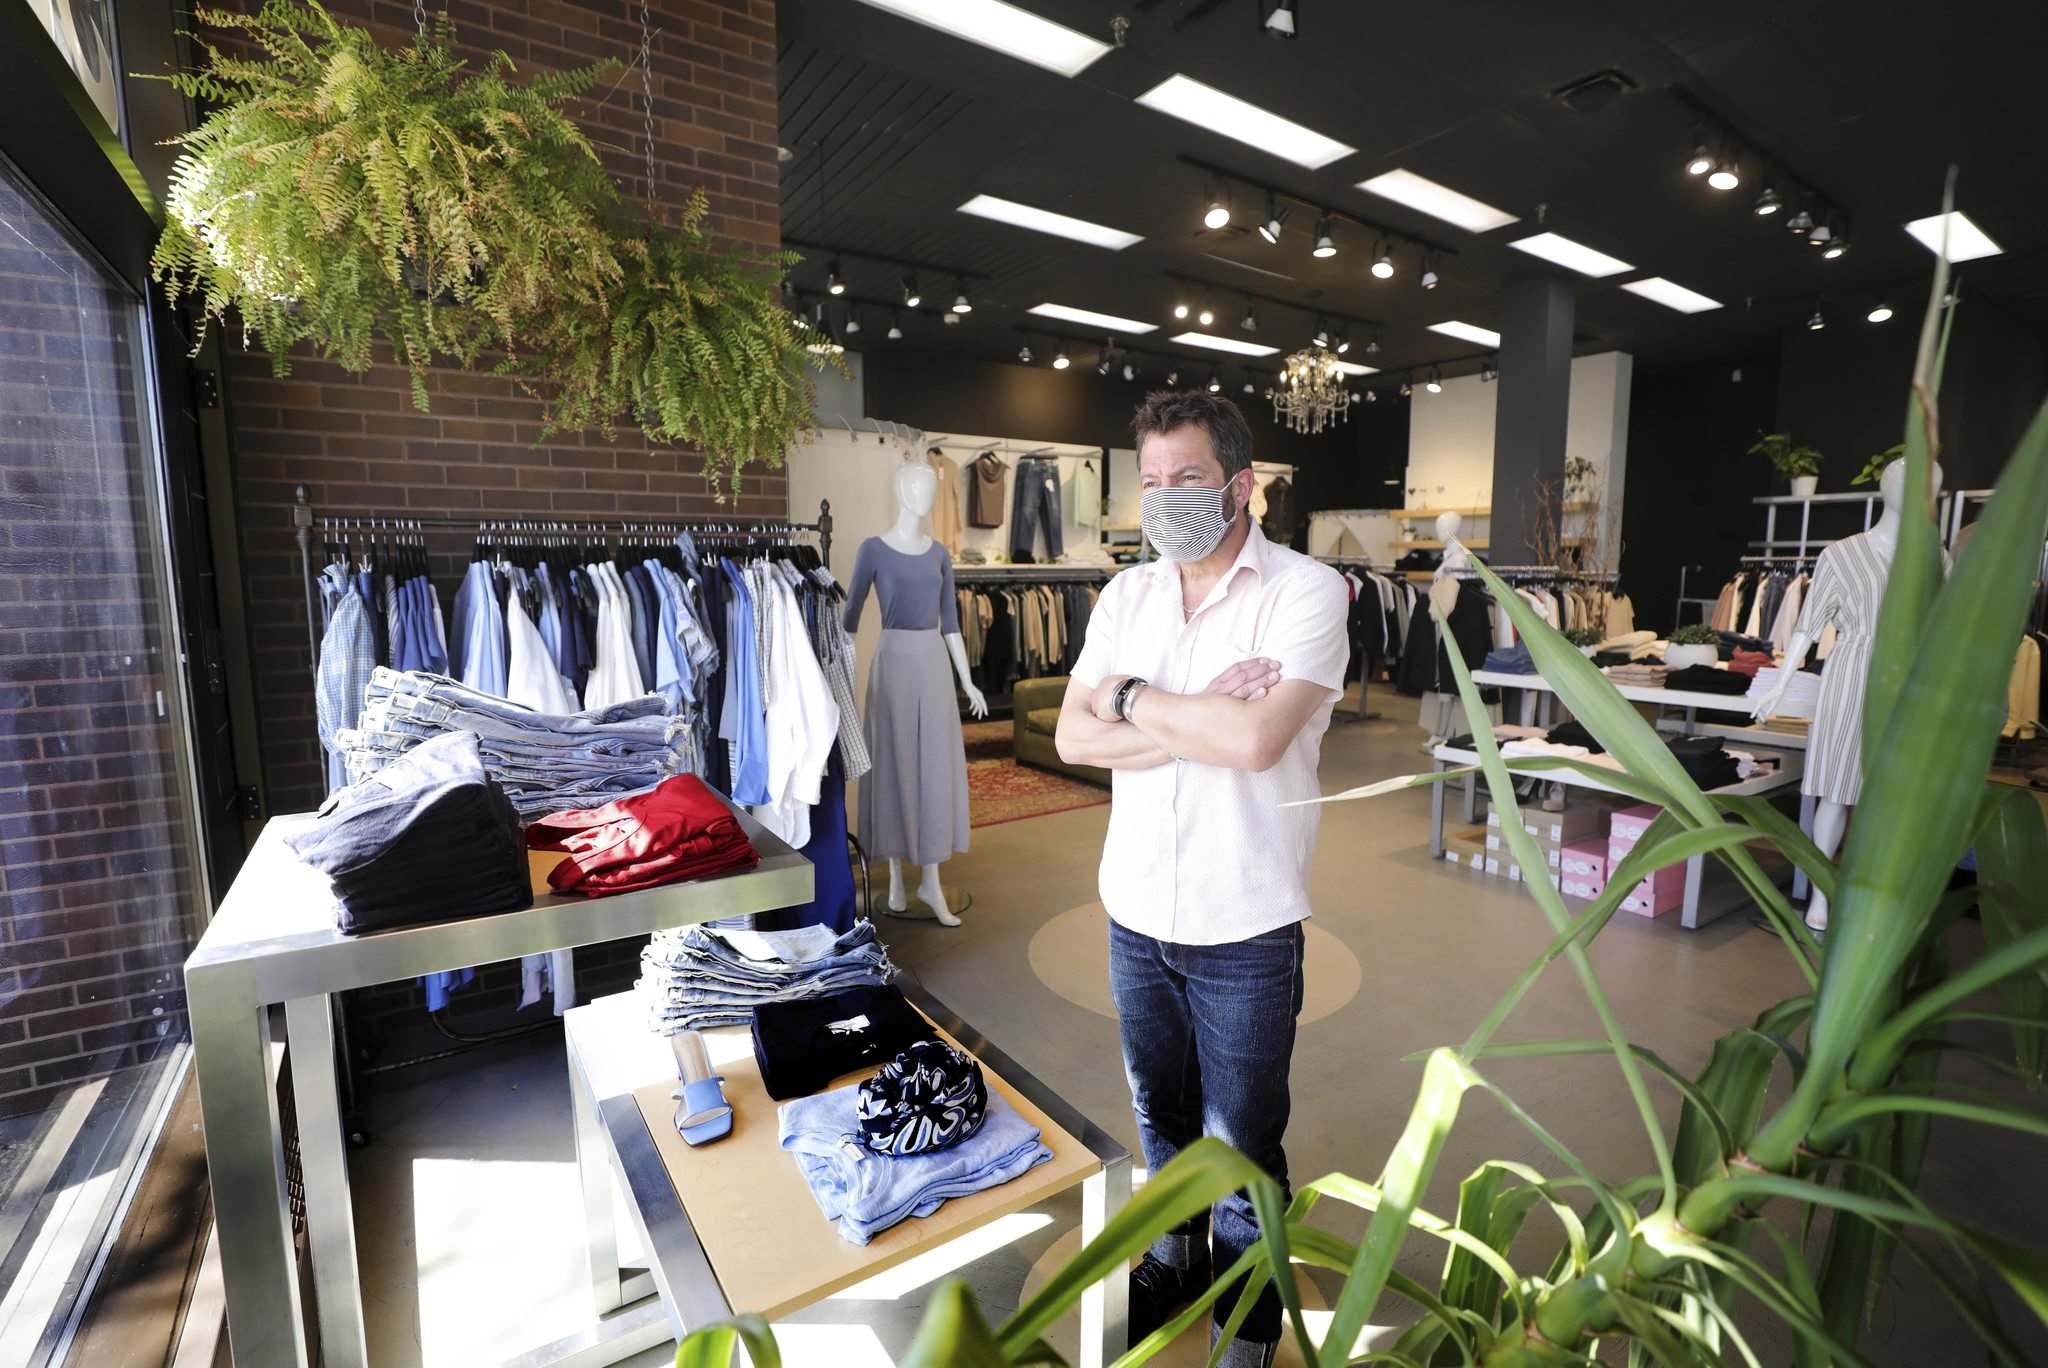 Clothier Aubrey Margolis, owner of Danali, said he believes the latest crackdown represents 'ridiculous restrictions which have no backing in data.' (Ruth Bonneville / Winnipeg Free Press)